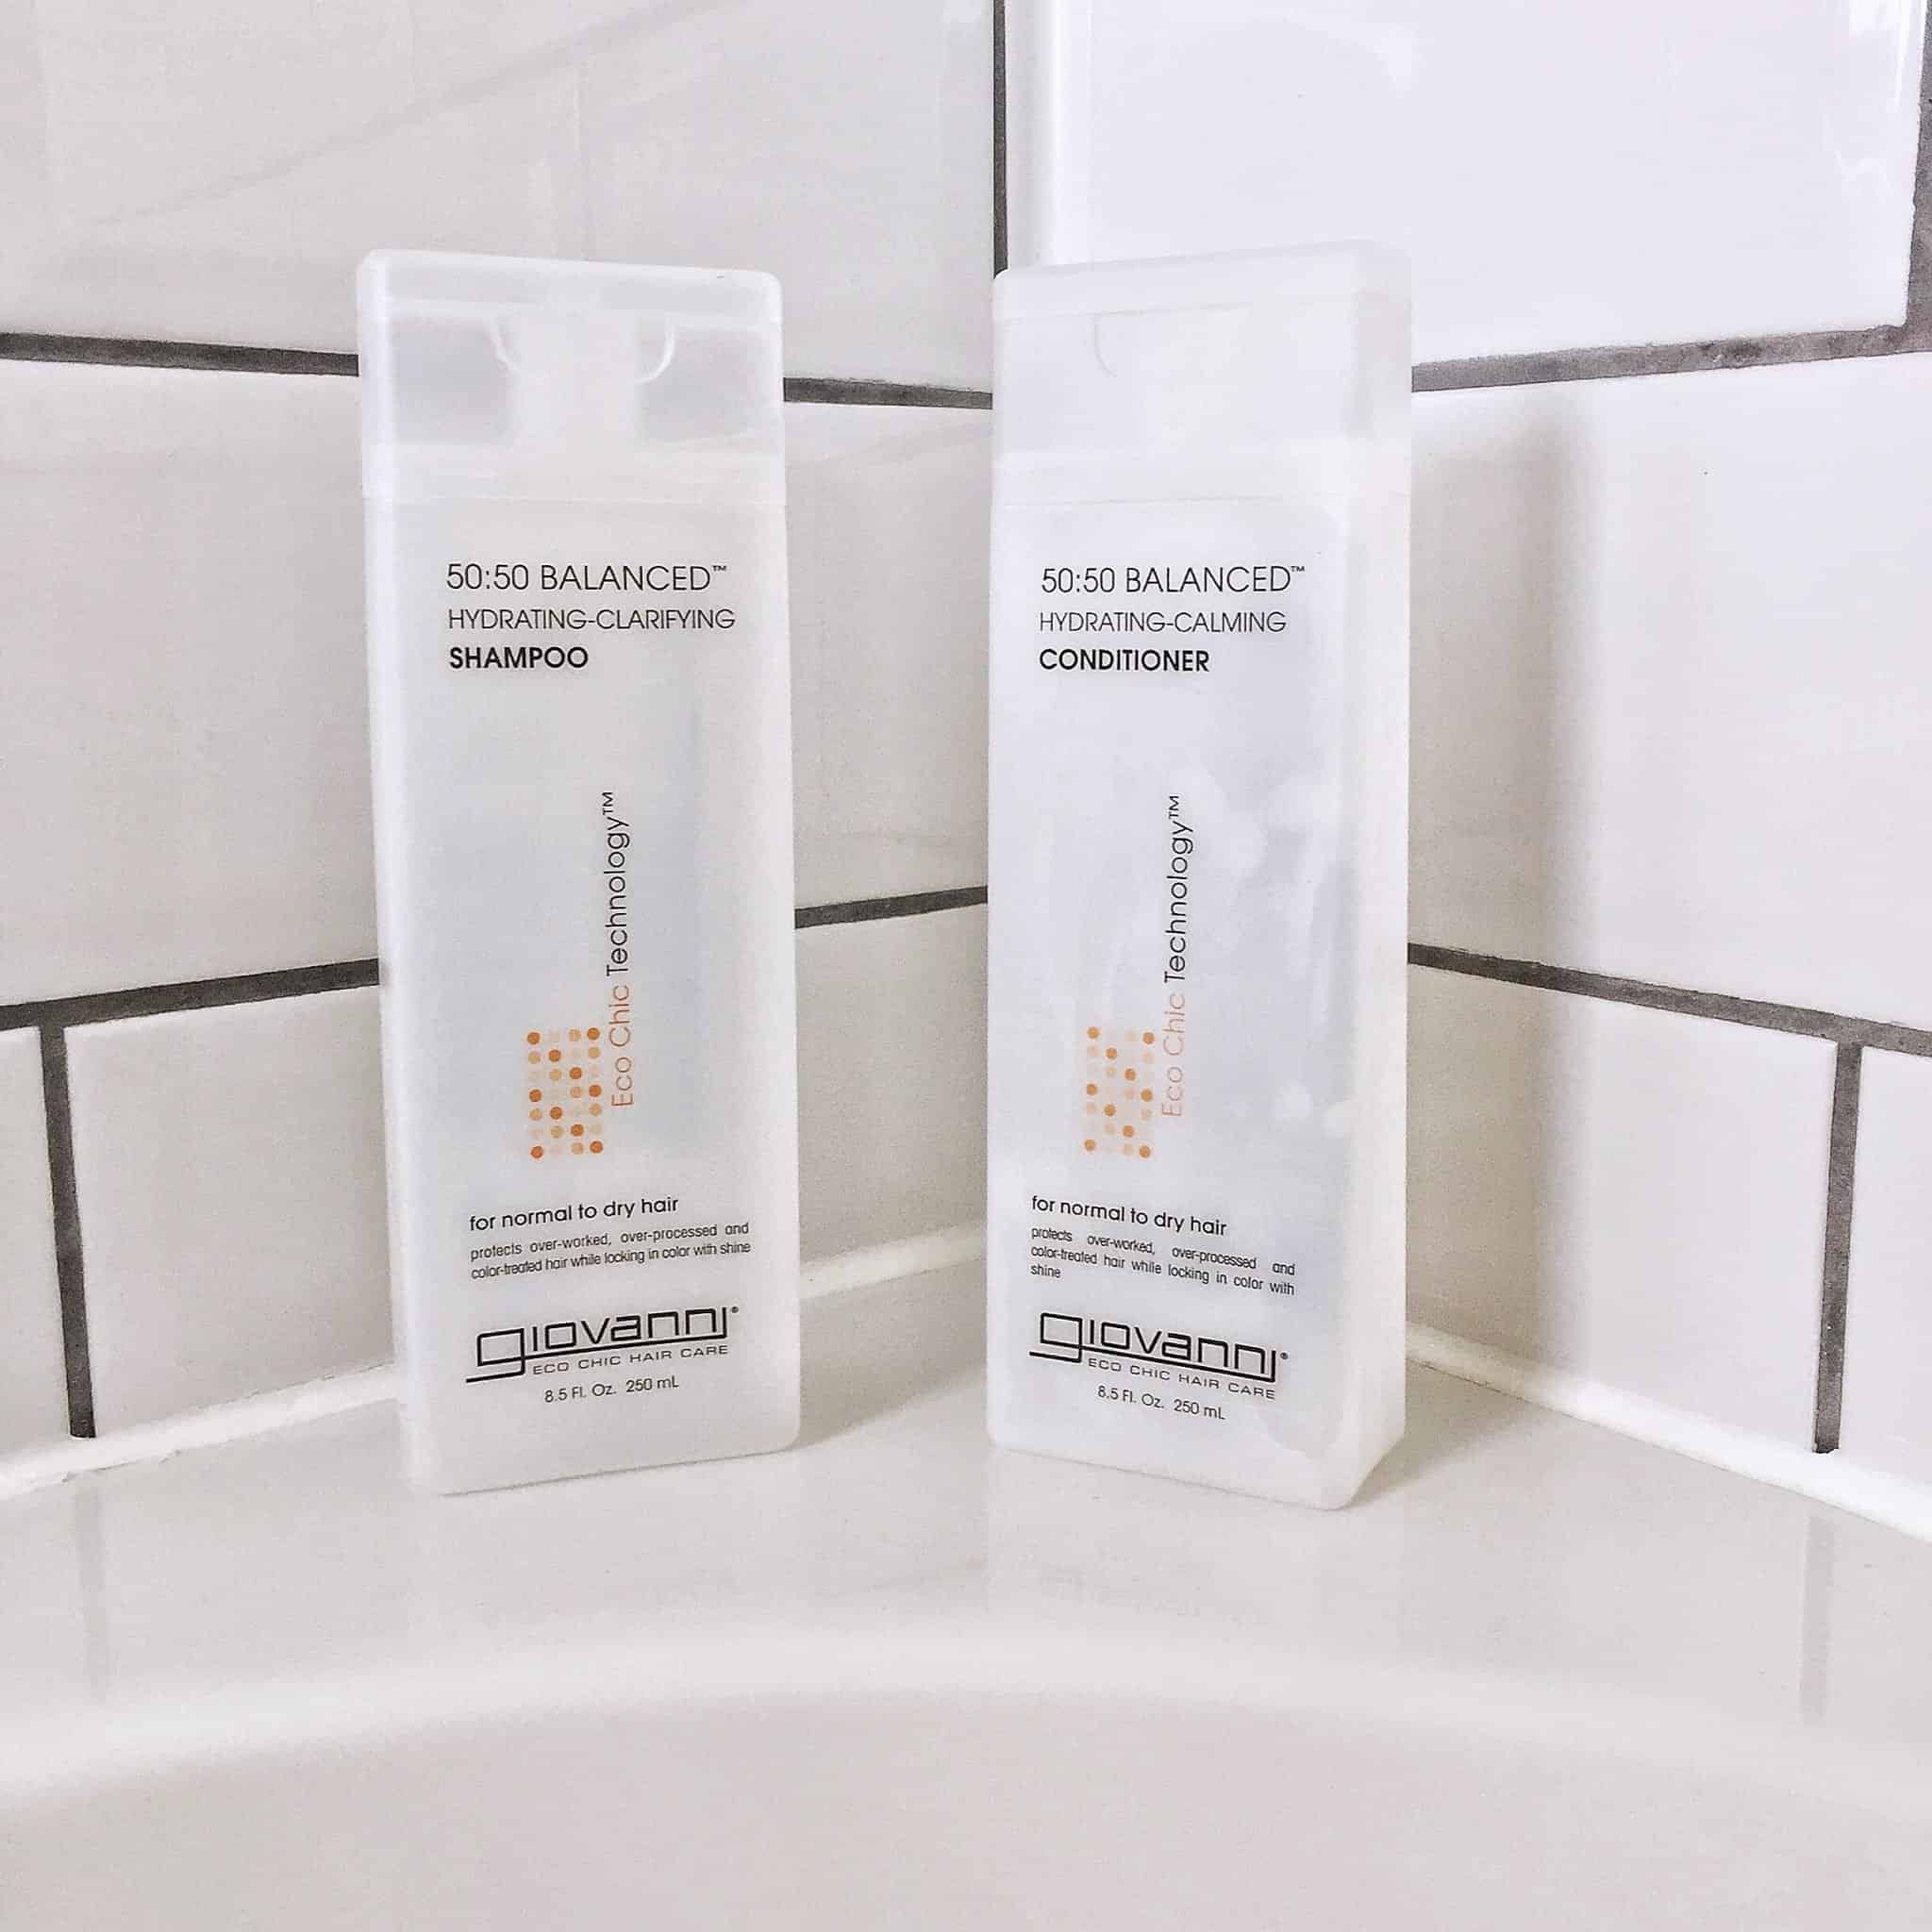 Giovanni Eco Chic Hair Care Shampoo & Conditioner Review